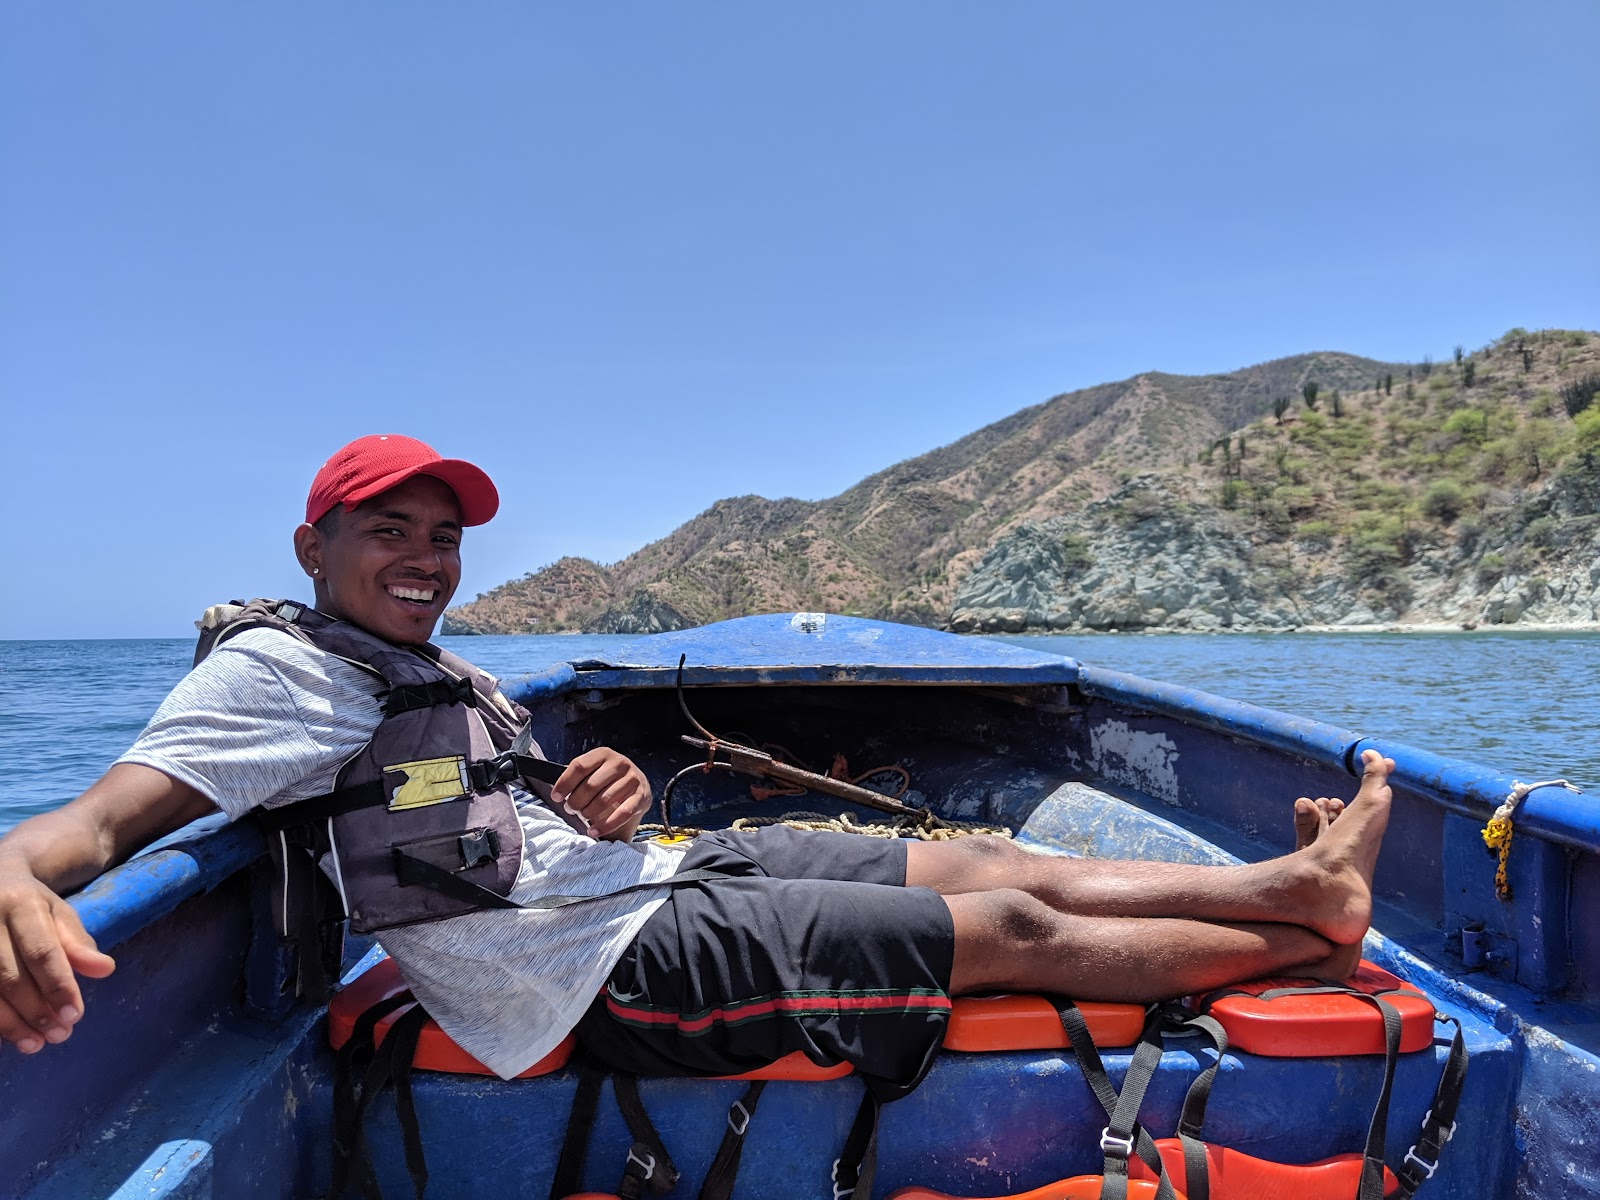 Boat ride from Taganga to Playa Grande in Colombia